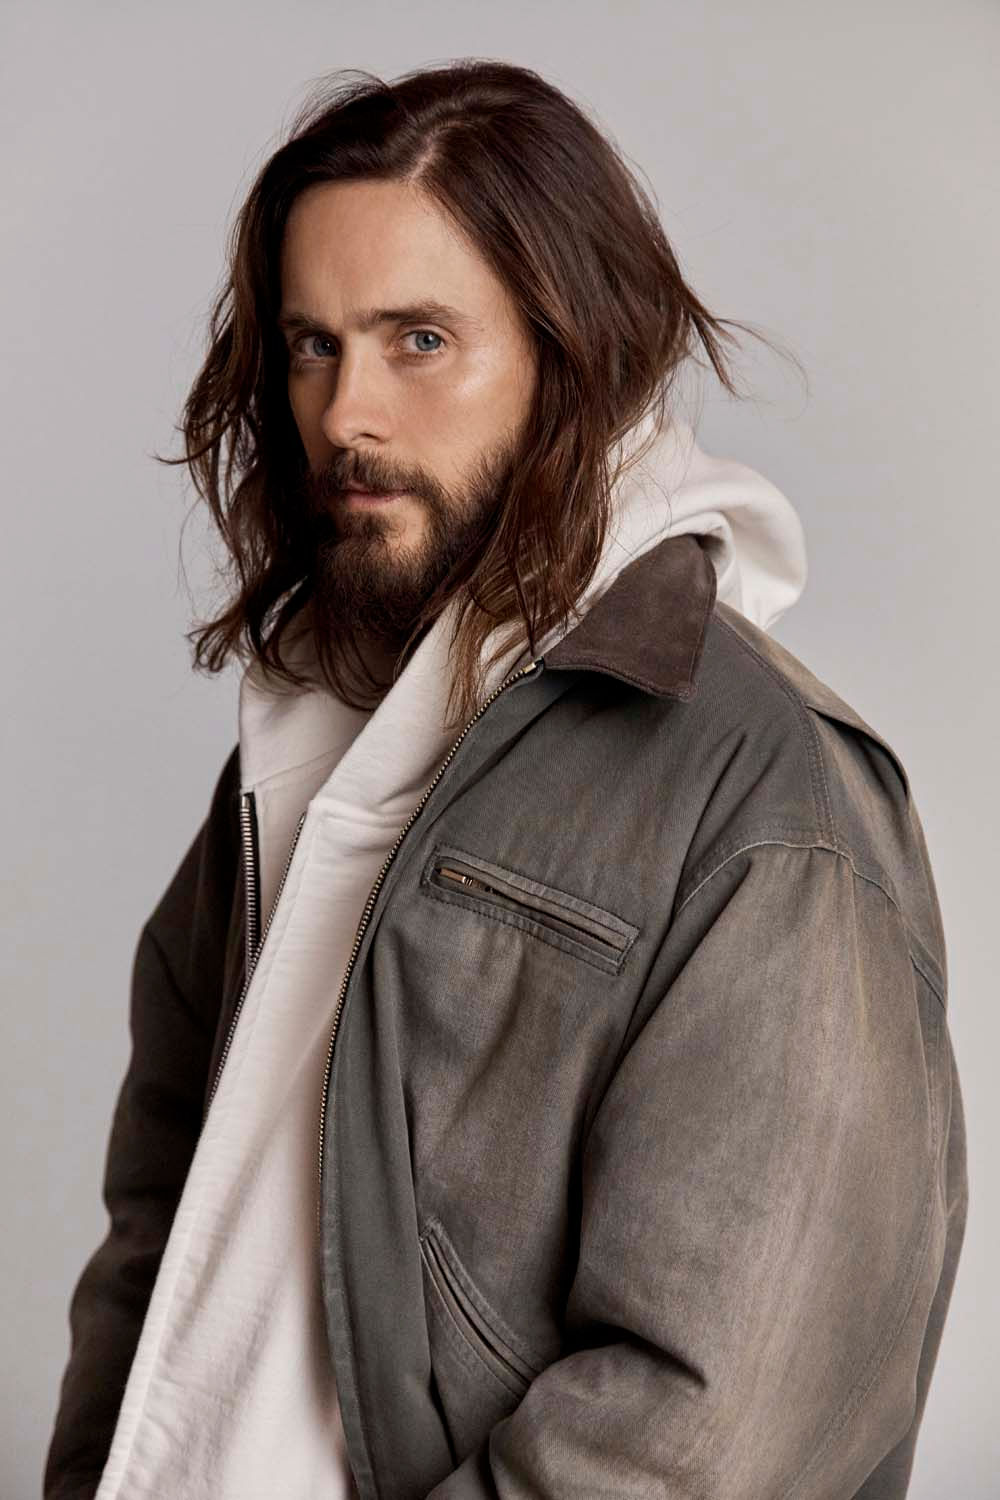 https_%2F%2Fhypebeast.com%2Fimage%2F2018%2F09%2Ffear-of-god-6-sixth-collection-jared-leto-nike-57.jpg